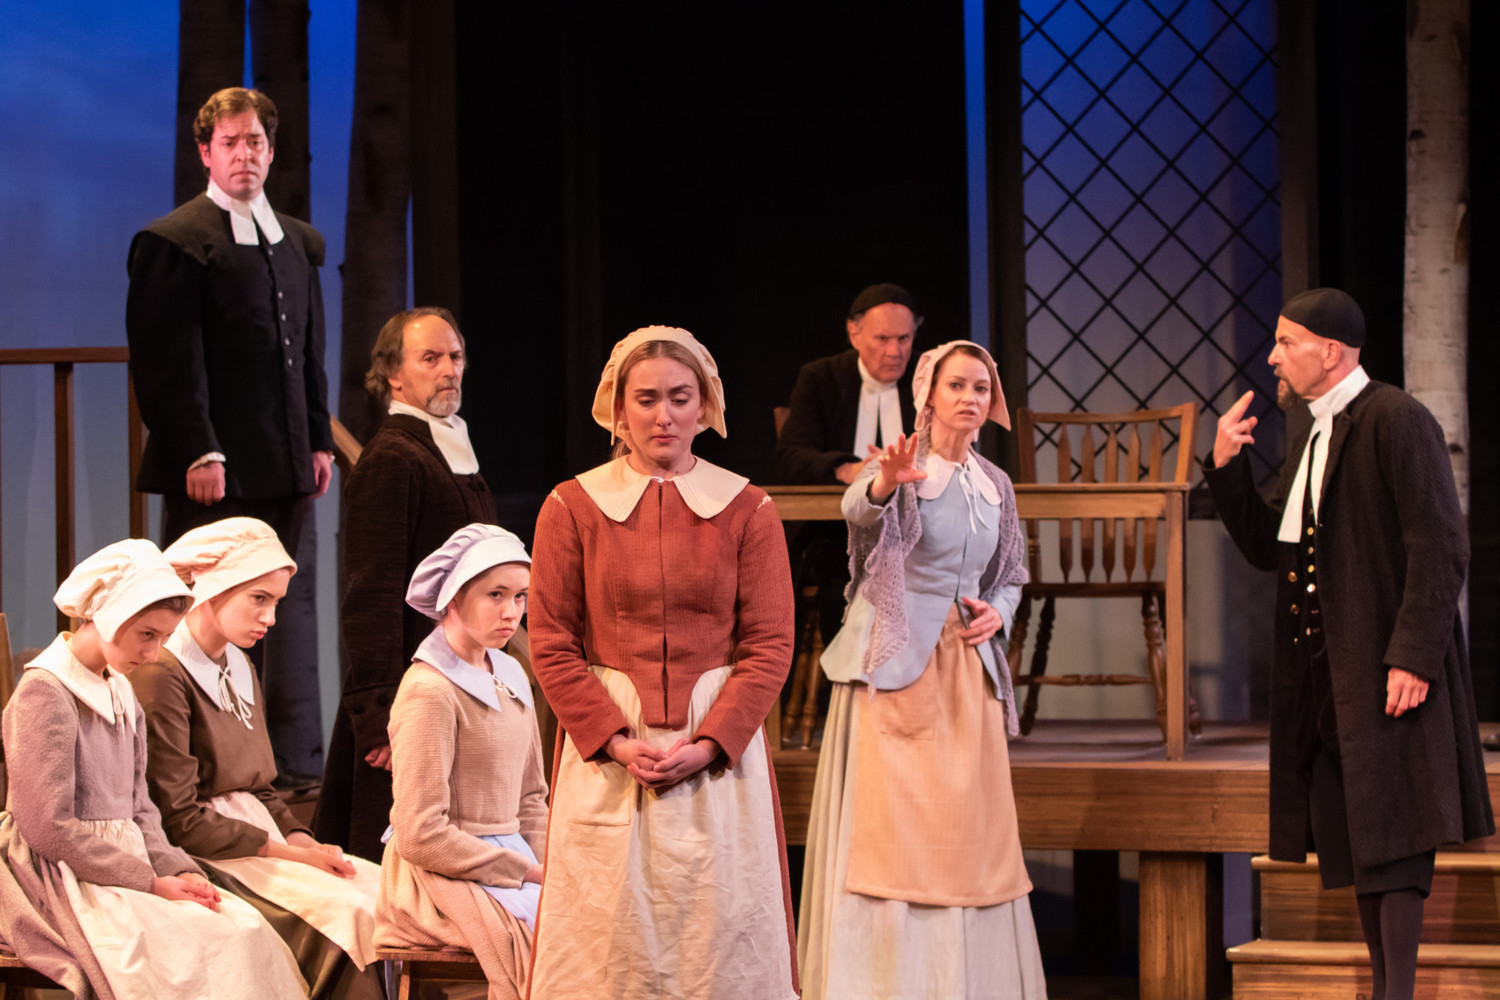 BWW Review: THE CRUCIBLE Opens the New Season of Love, Loss, and Laughter at Sacramento Theatre Company